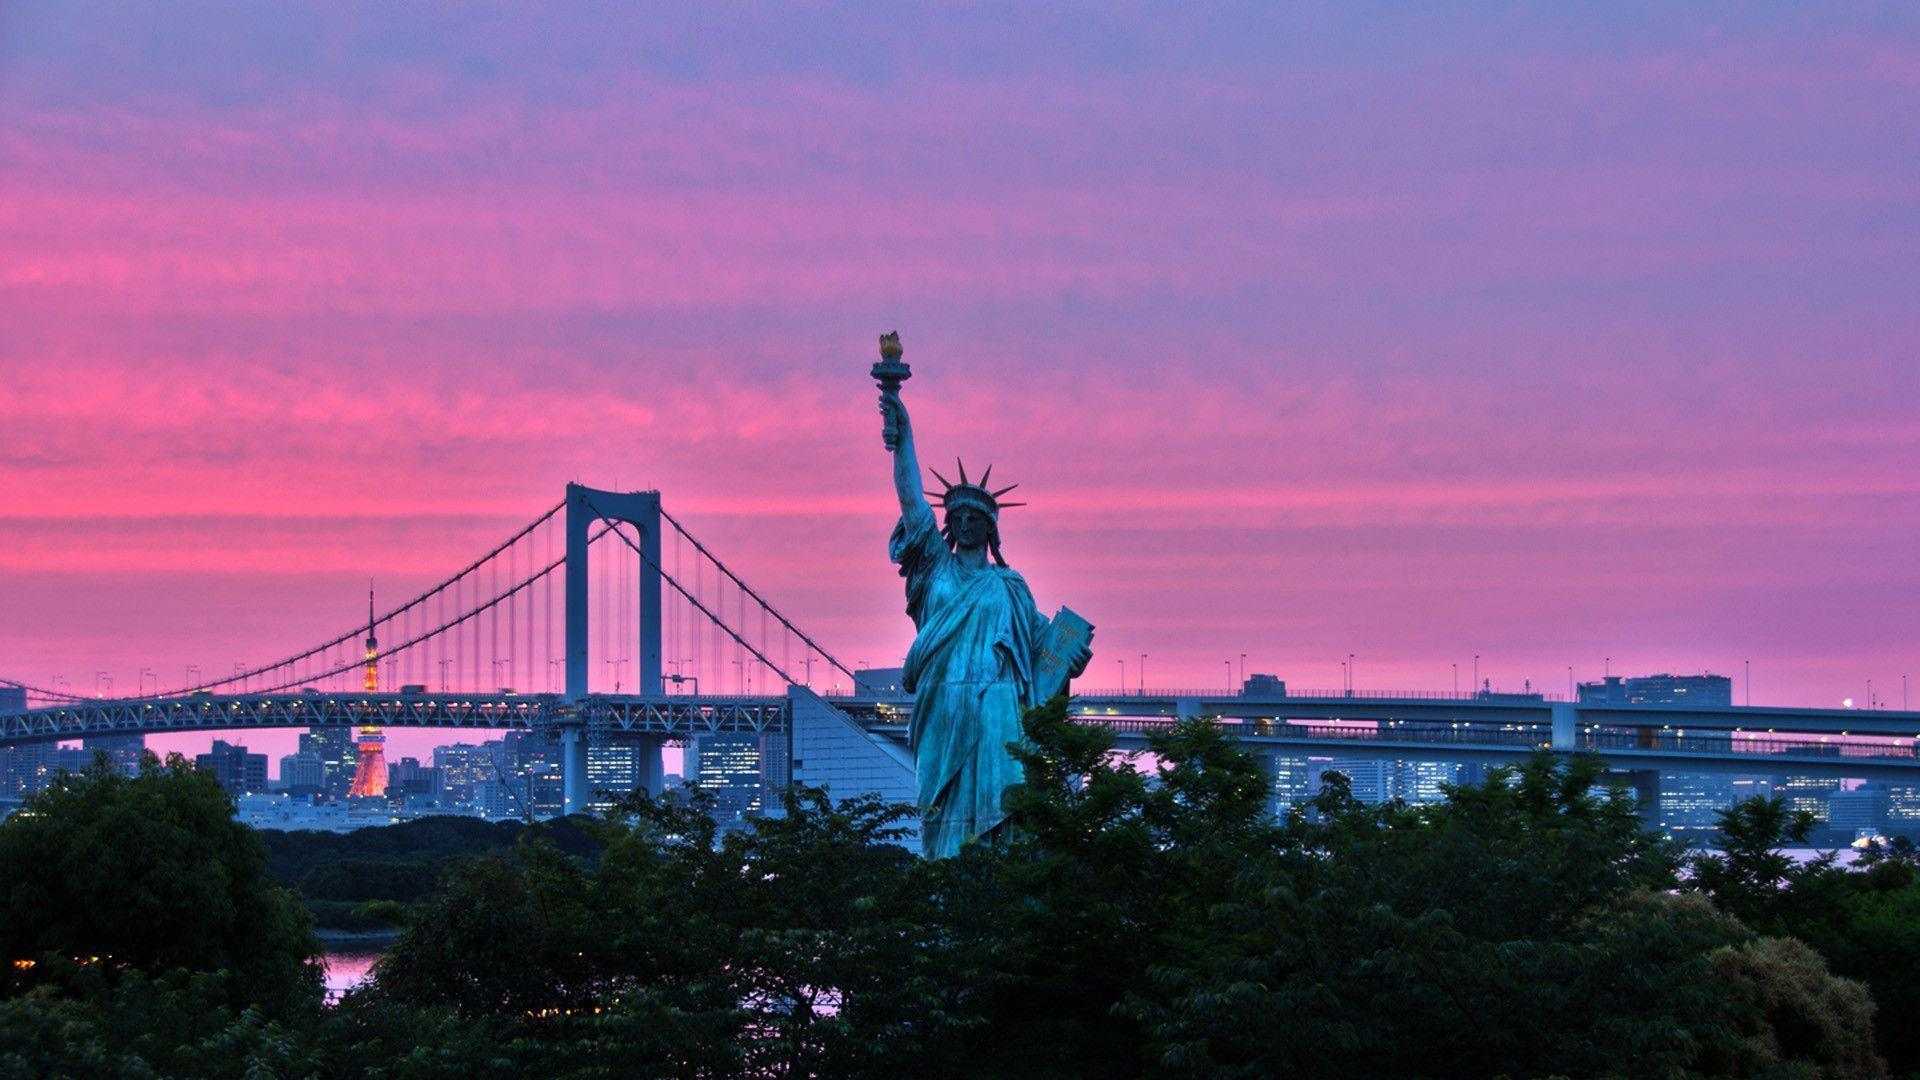 Statue of liberty new york united states wallpapers Stock Free Image